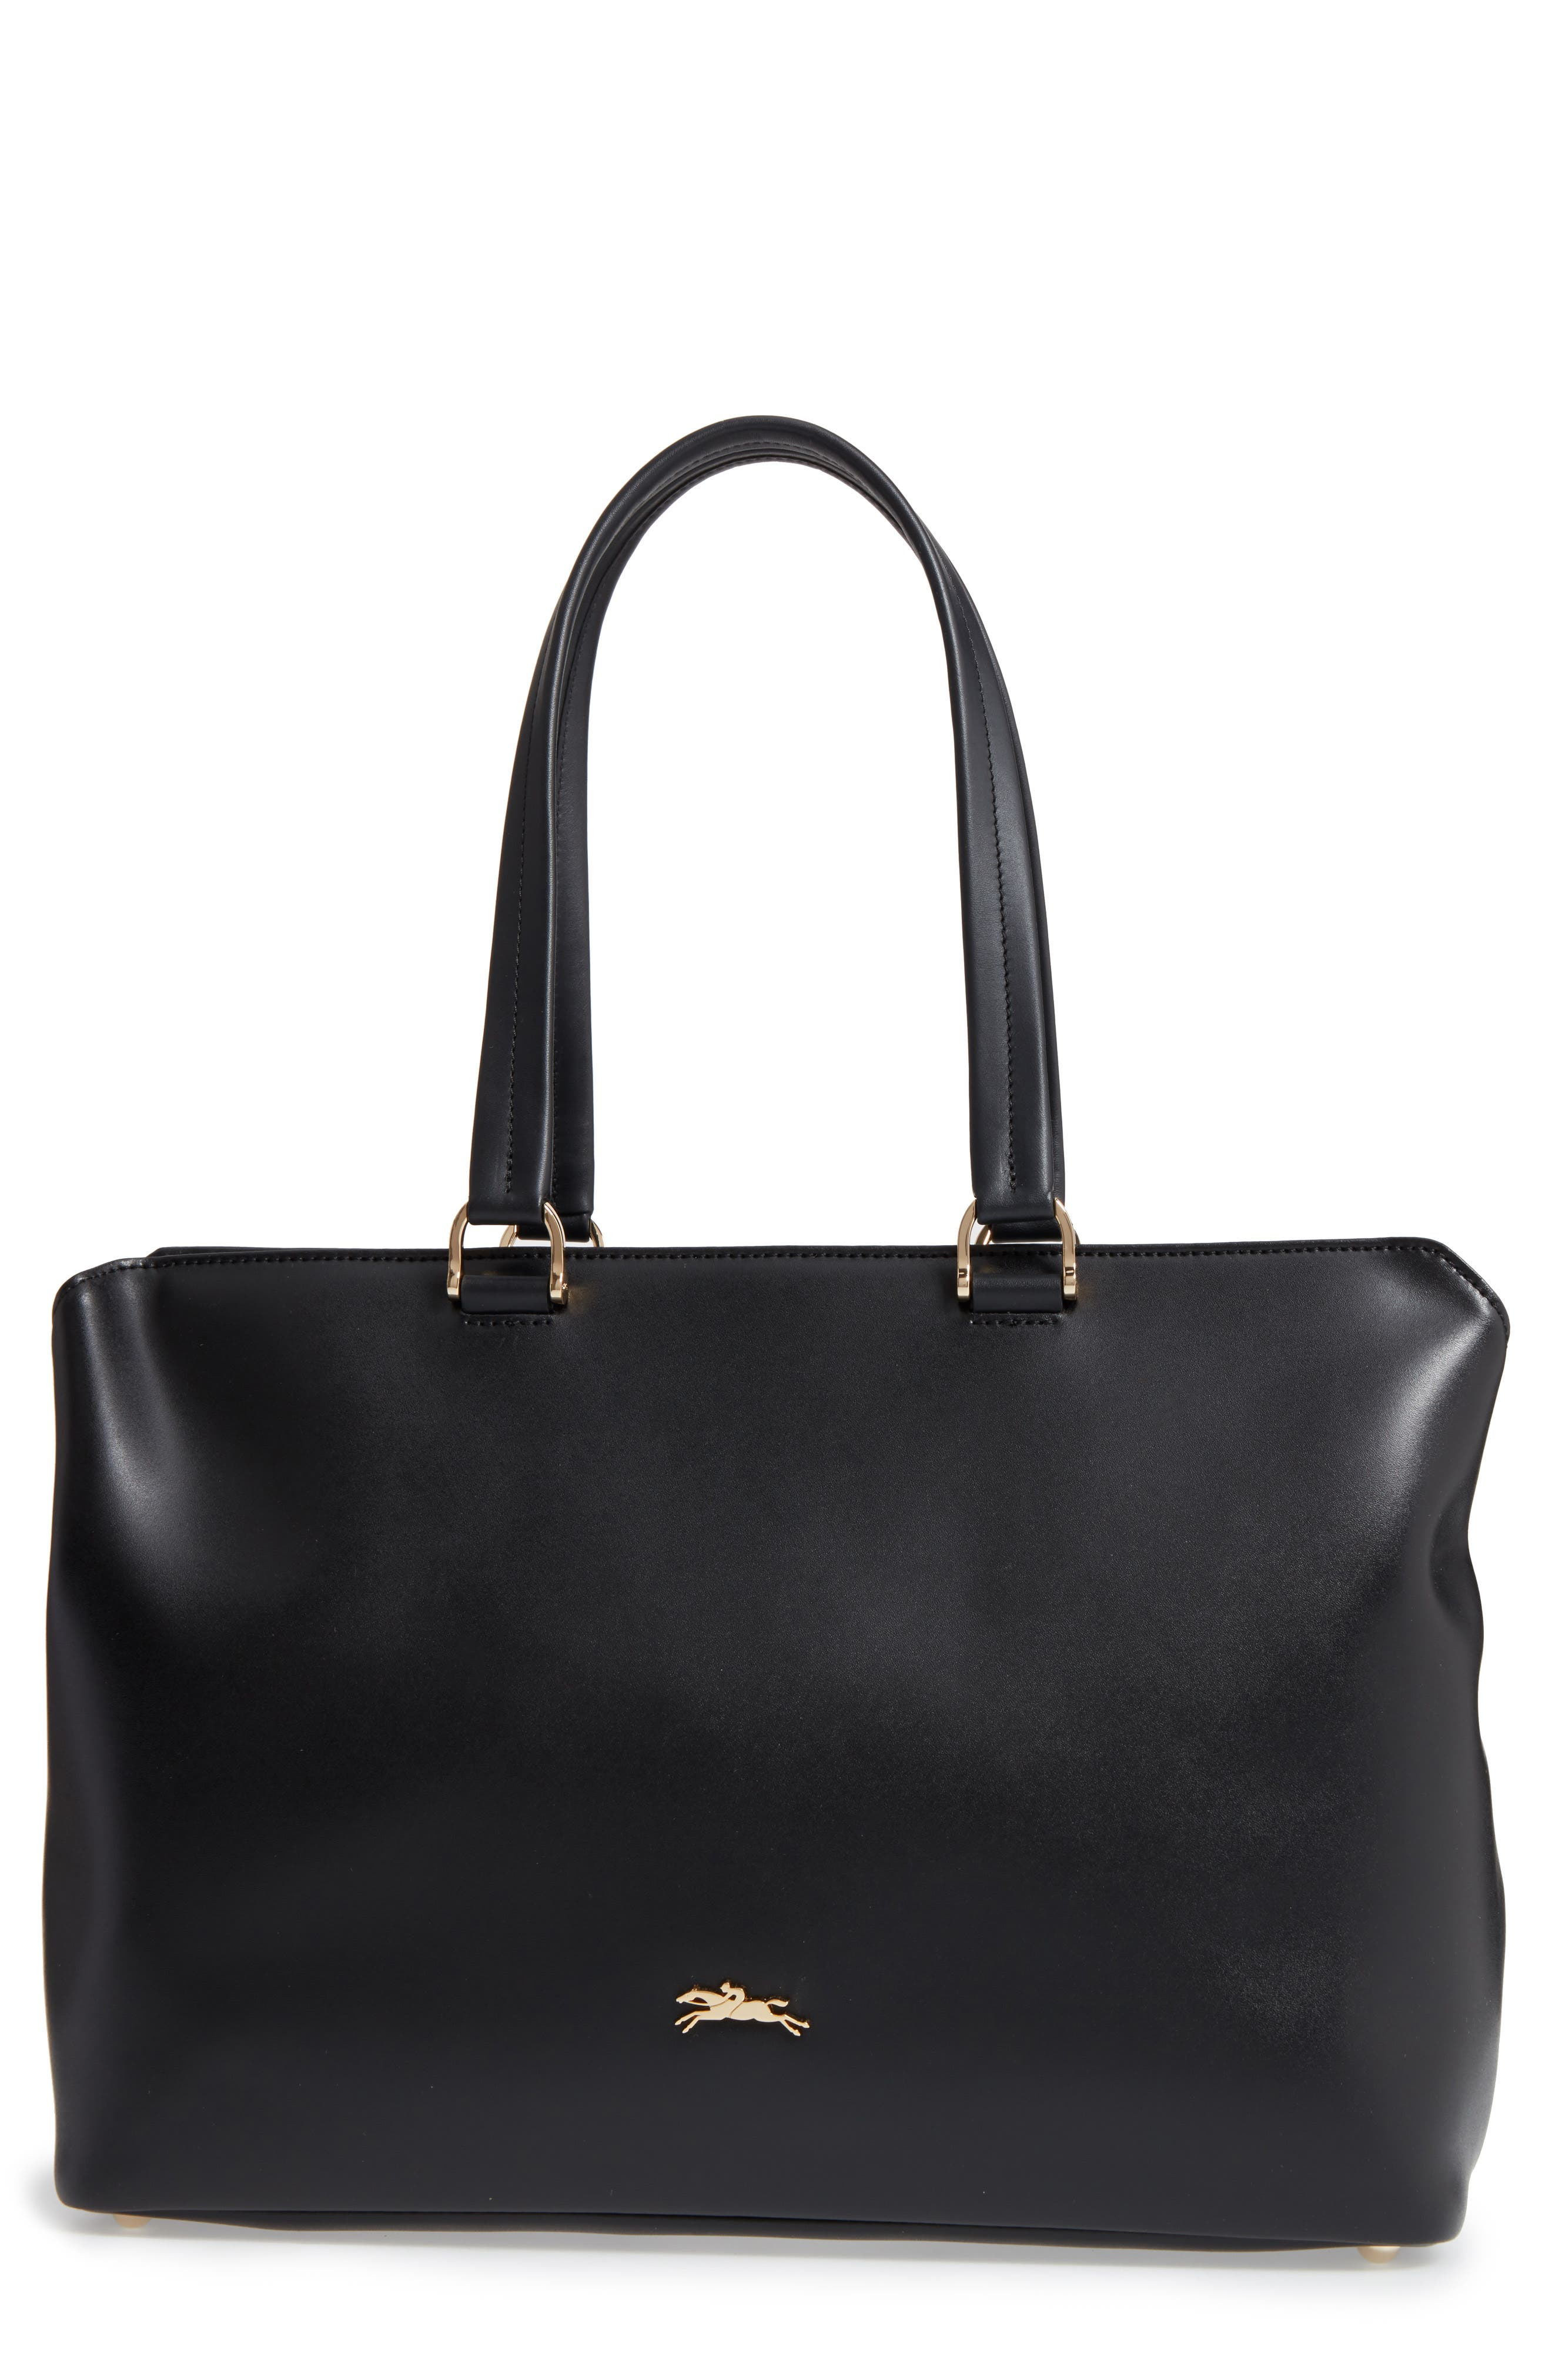 Honoré 404 Leather Tote,                         Main,                         color, 001